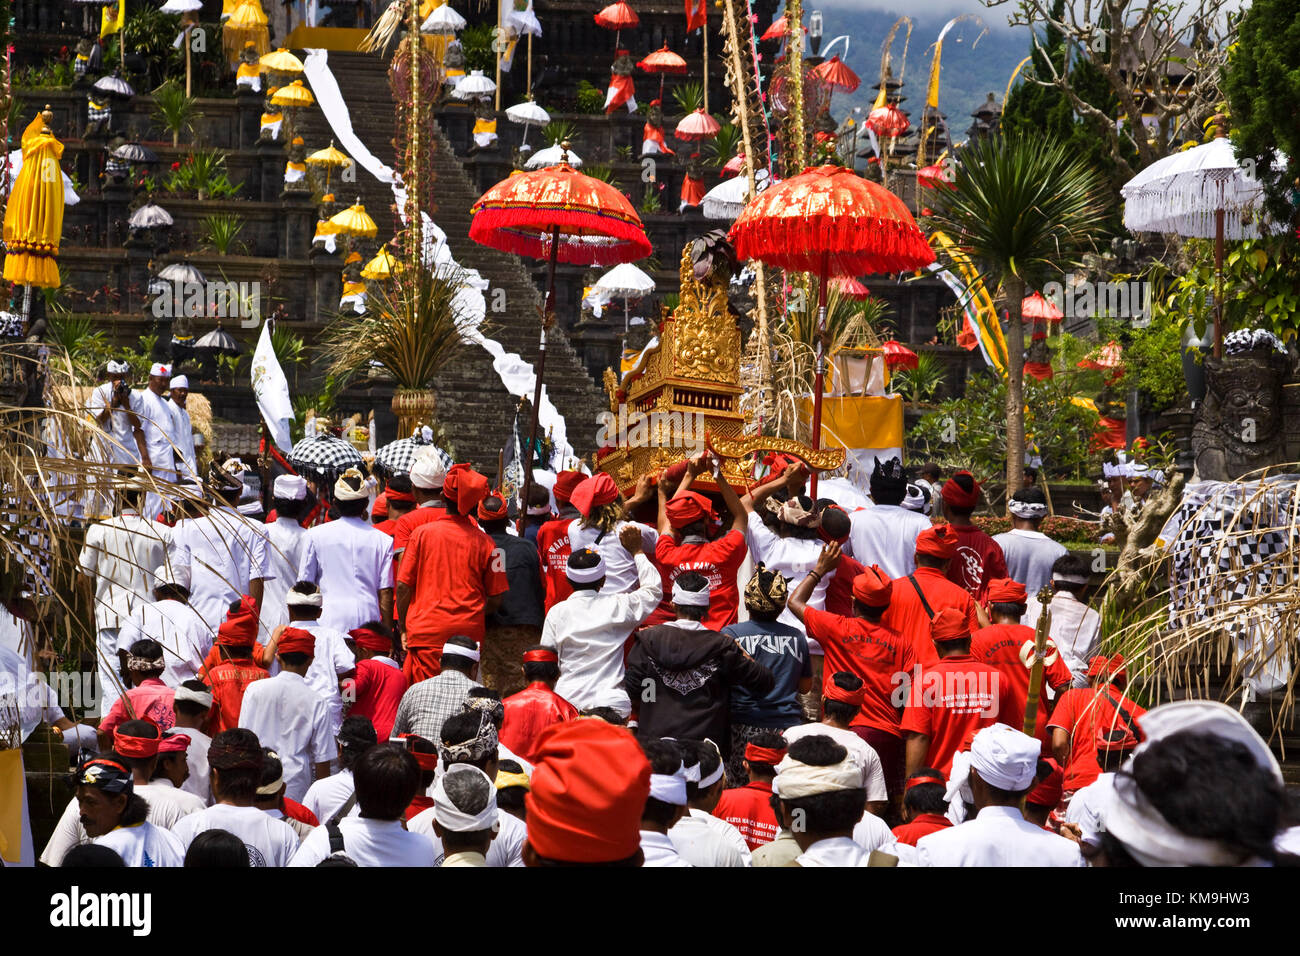 Panca Wali Krama, holy Celebration at Besakih temple every ten years, Bali, Indonesia - Stock Image